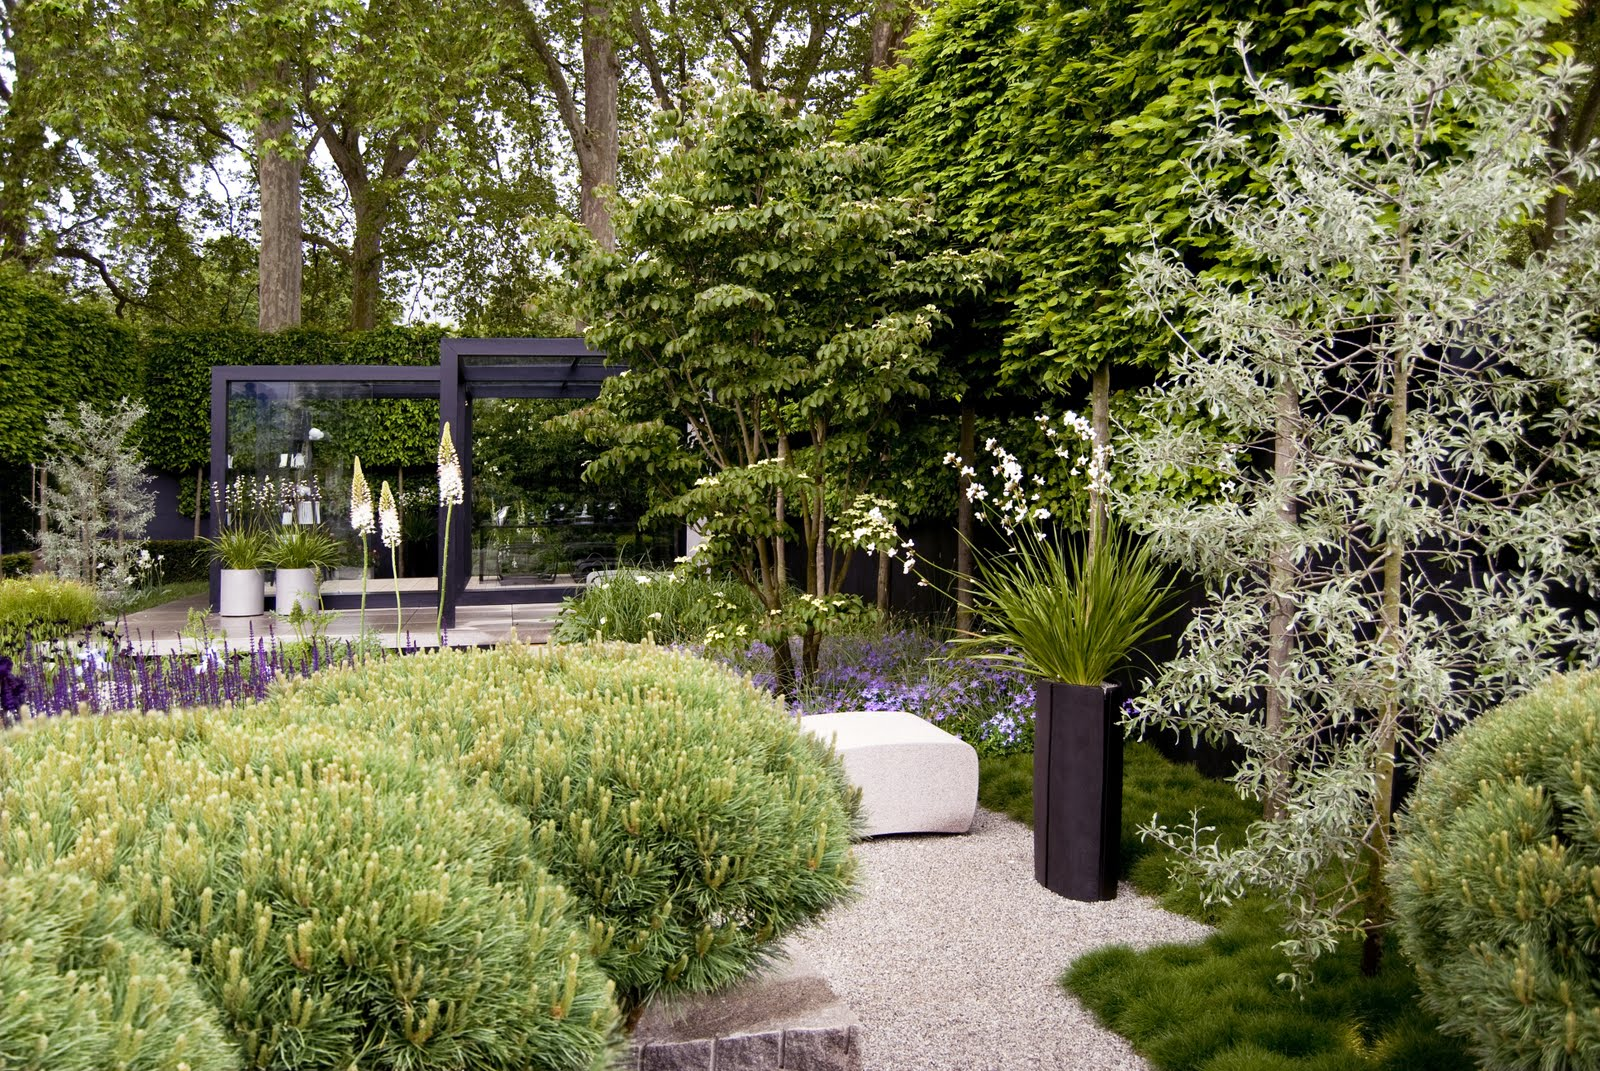 1000 images about ulf nordfjell on pinterest chelsea for Paisajismo jardines